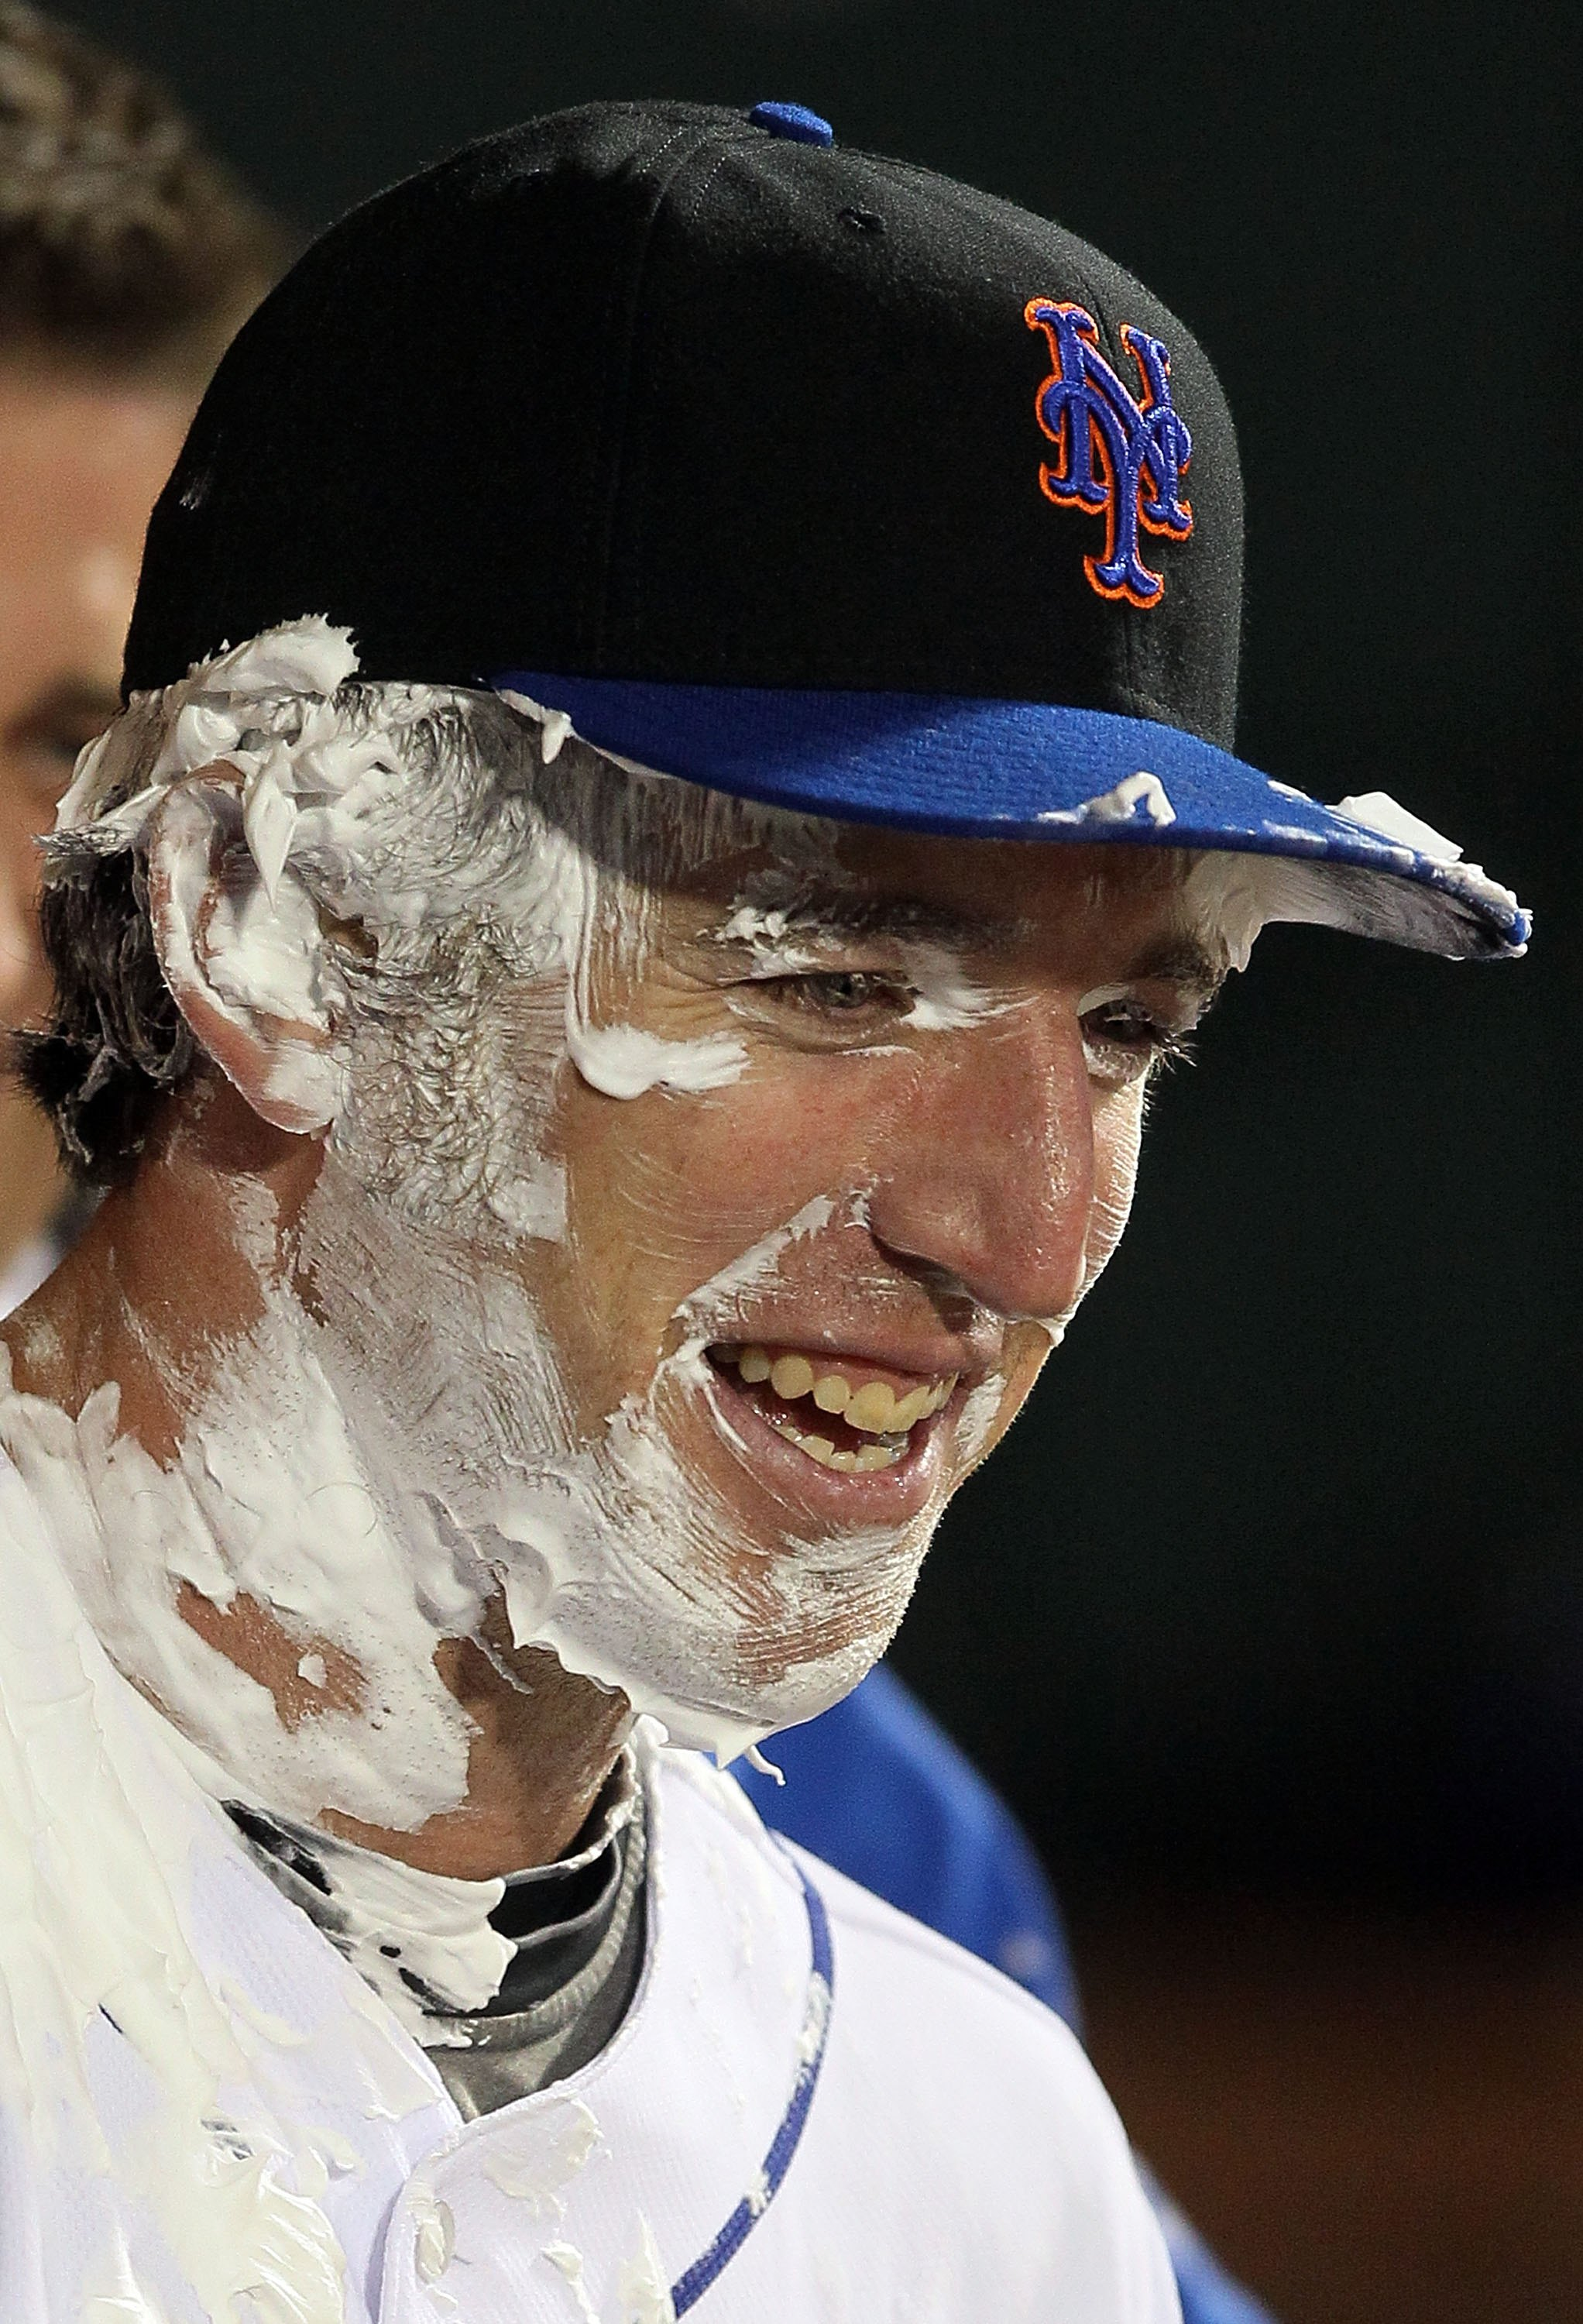 NEW YORK - APRIL 19:  New York Mets rookie Ike Davis #29 looks on after receiving a pie in the face after the game against the Chicago Cubs on April 19, 2010 at Citi Field in the Flushing neighborhood of the Queens borough of New York City. Players from b